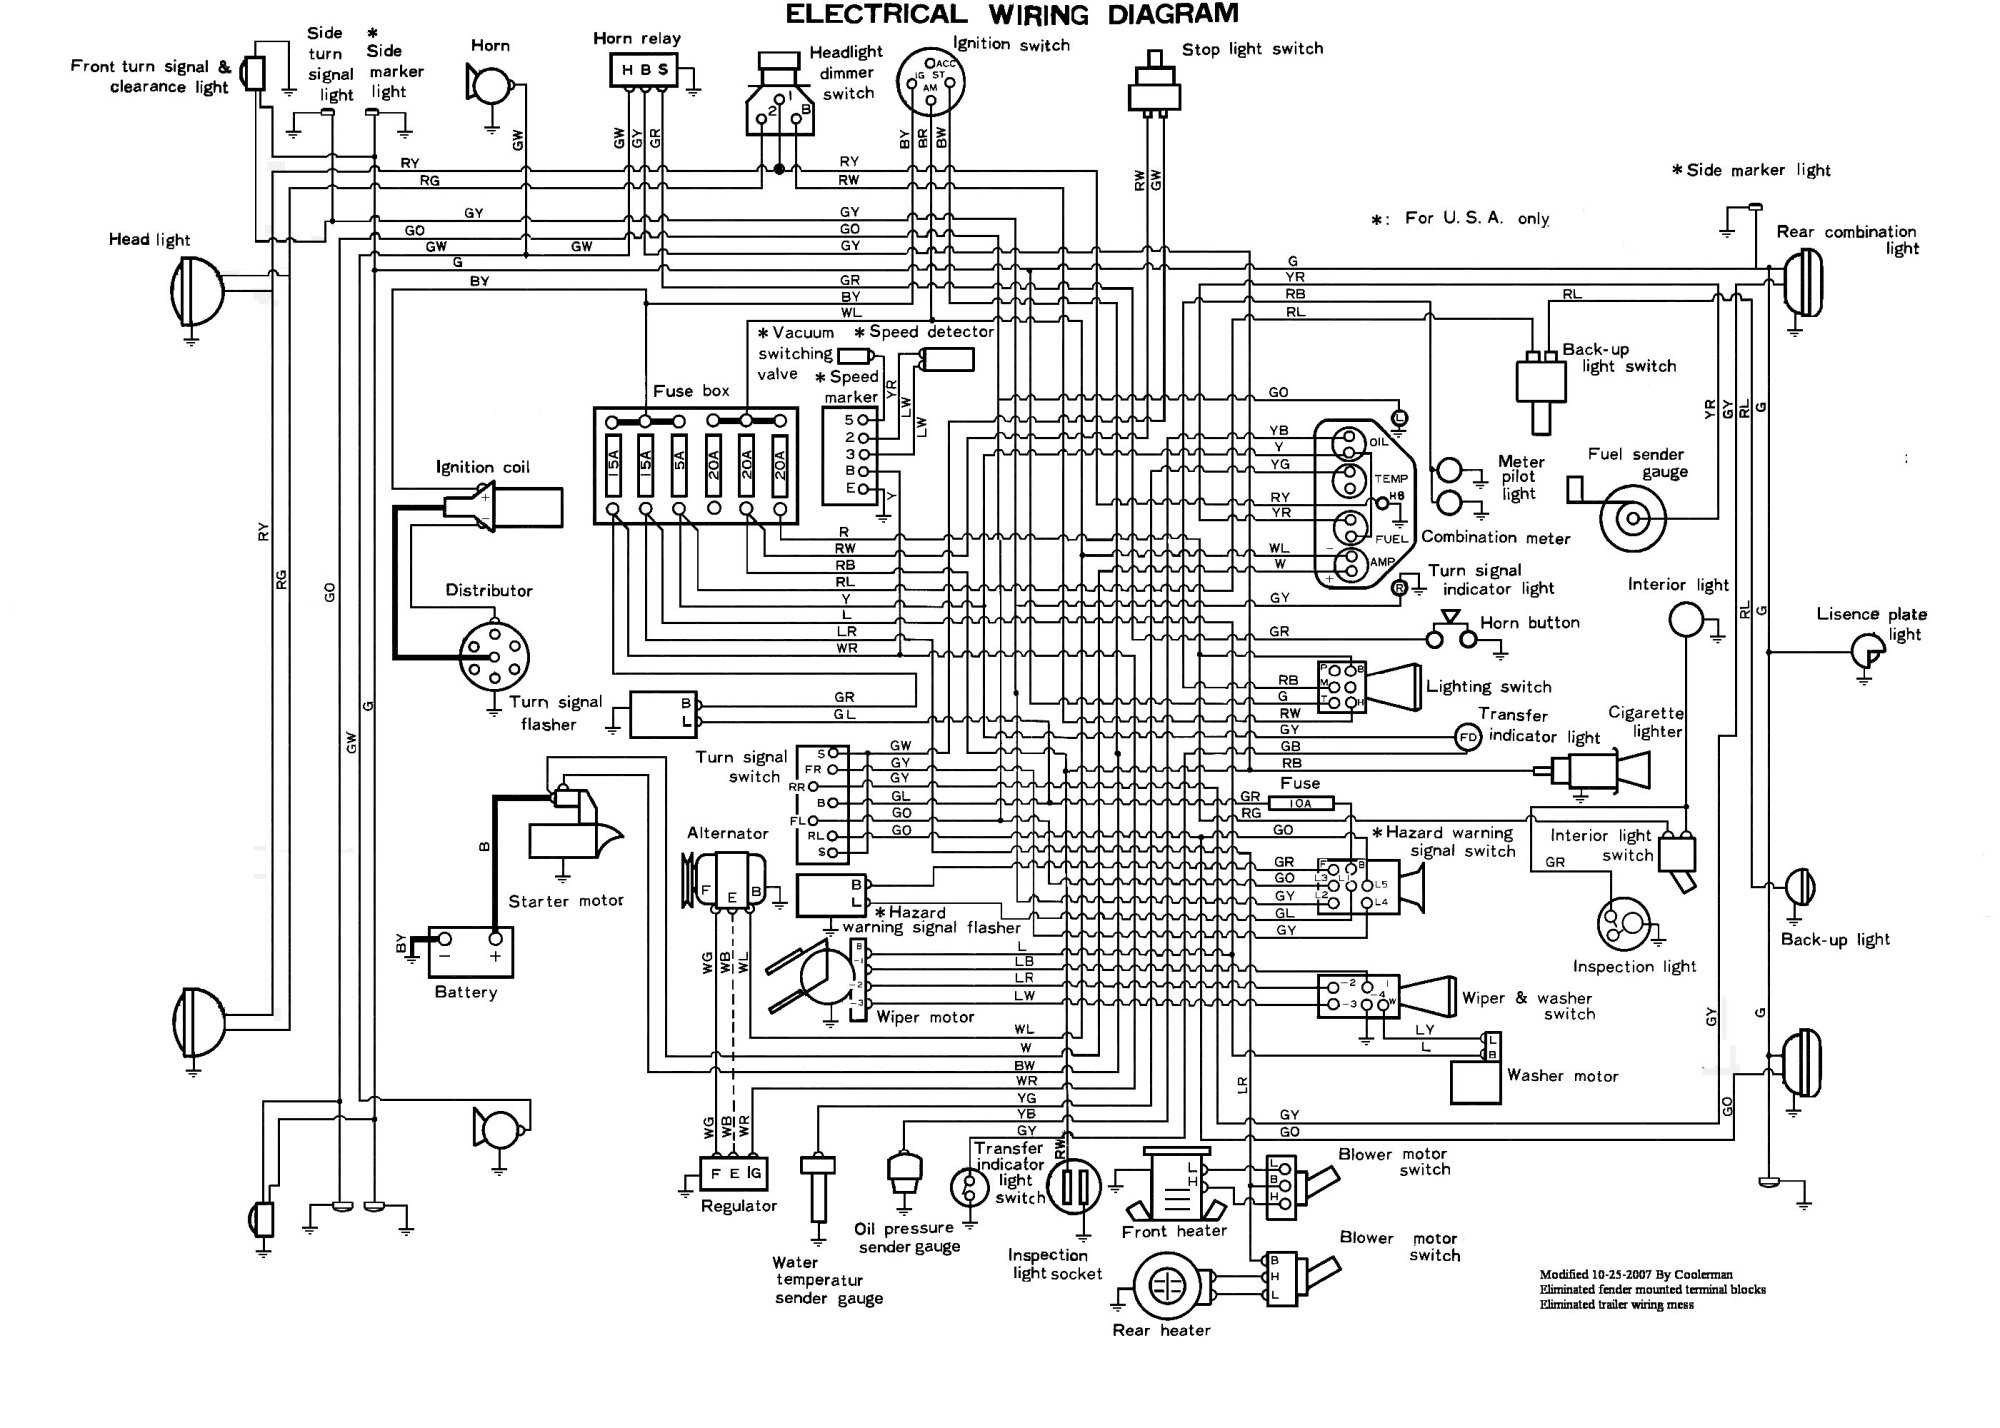 hight resolution of wiring diagram for hyundai i10 wiring library rh 99 insidestralsund de hyundai sonata wiring diagram hyundai accent schematic diagrams